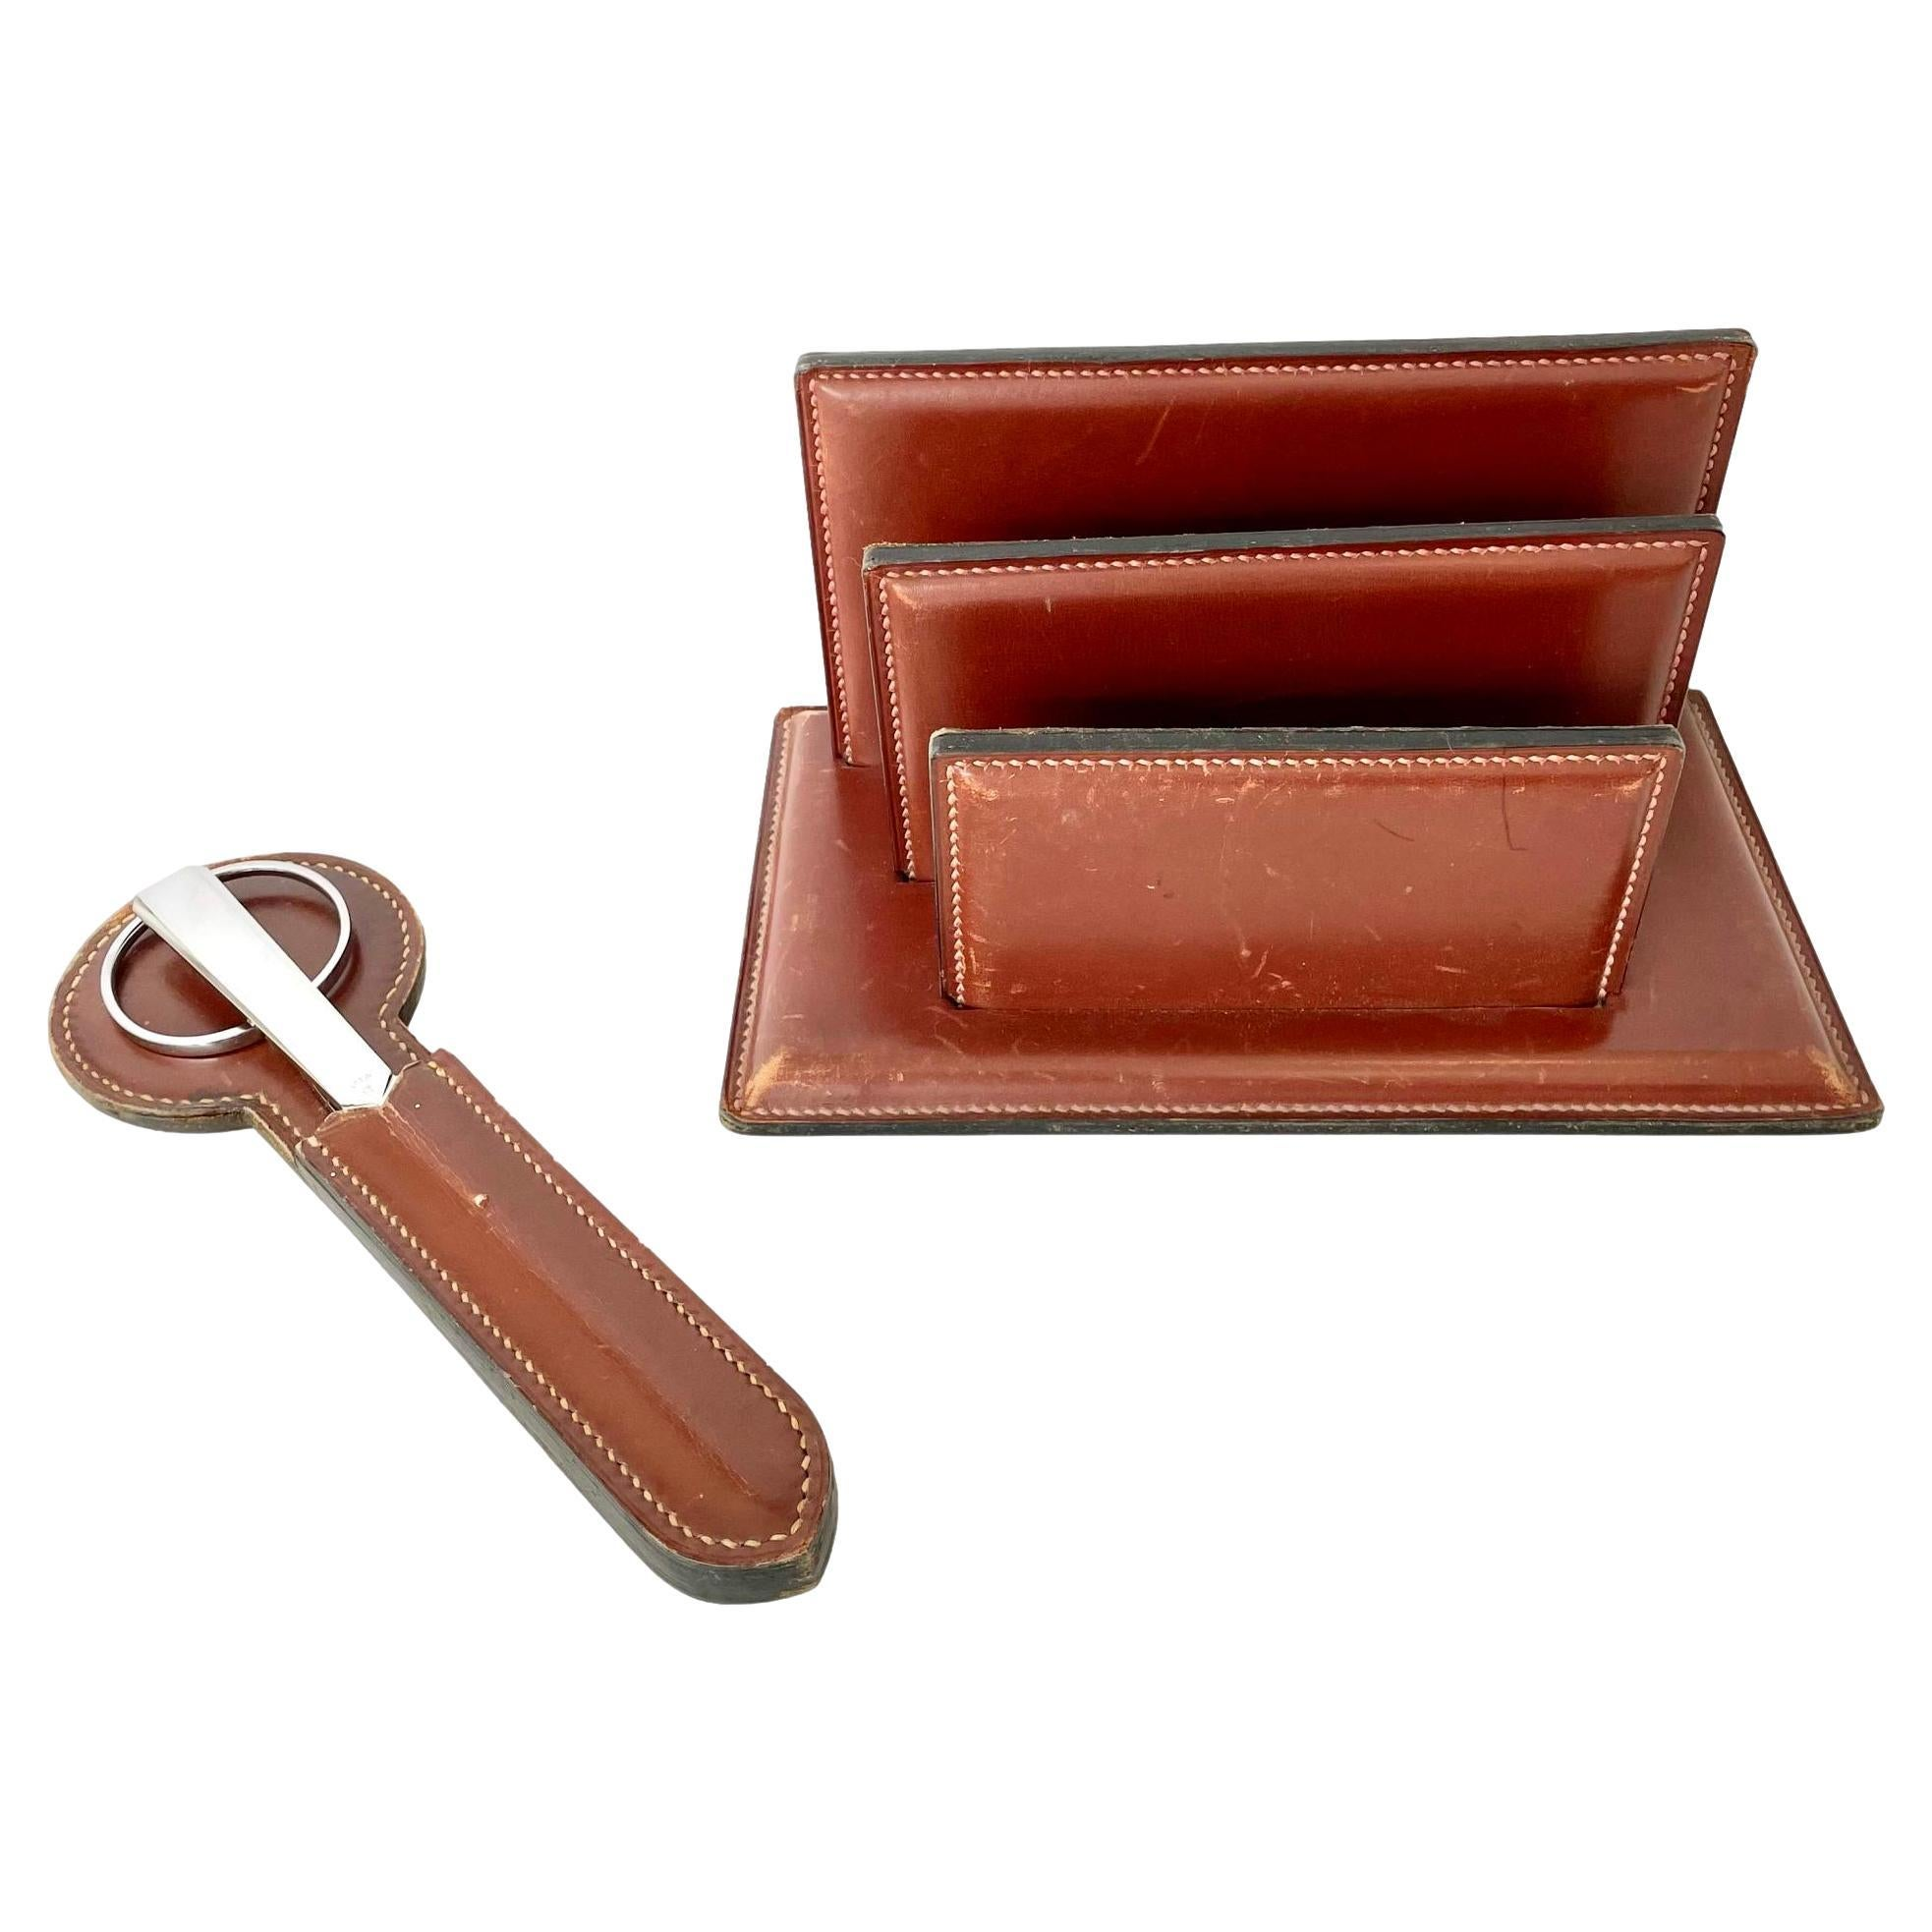 Adnet Style French Leather Desk Set